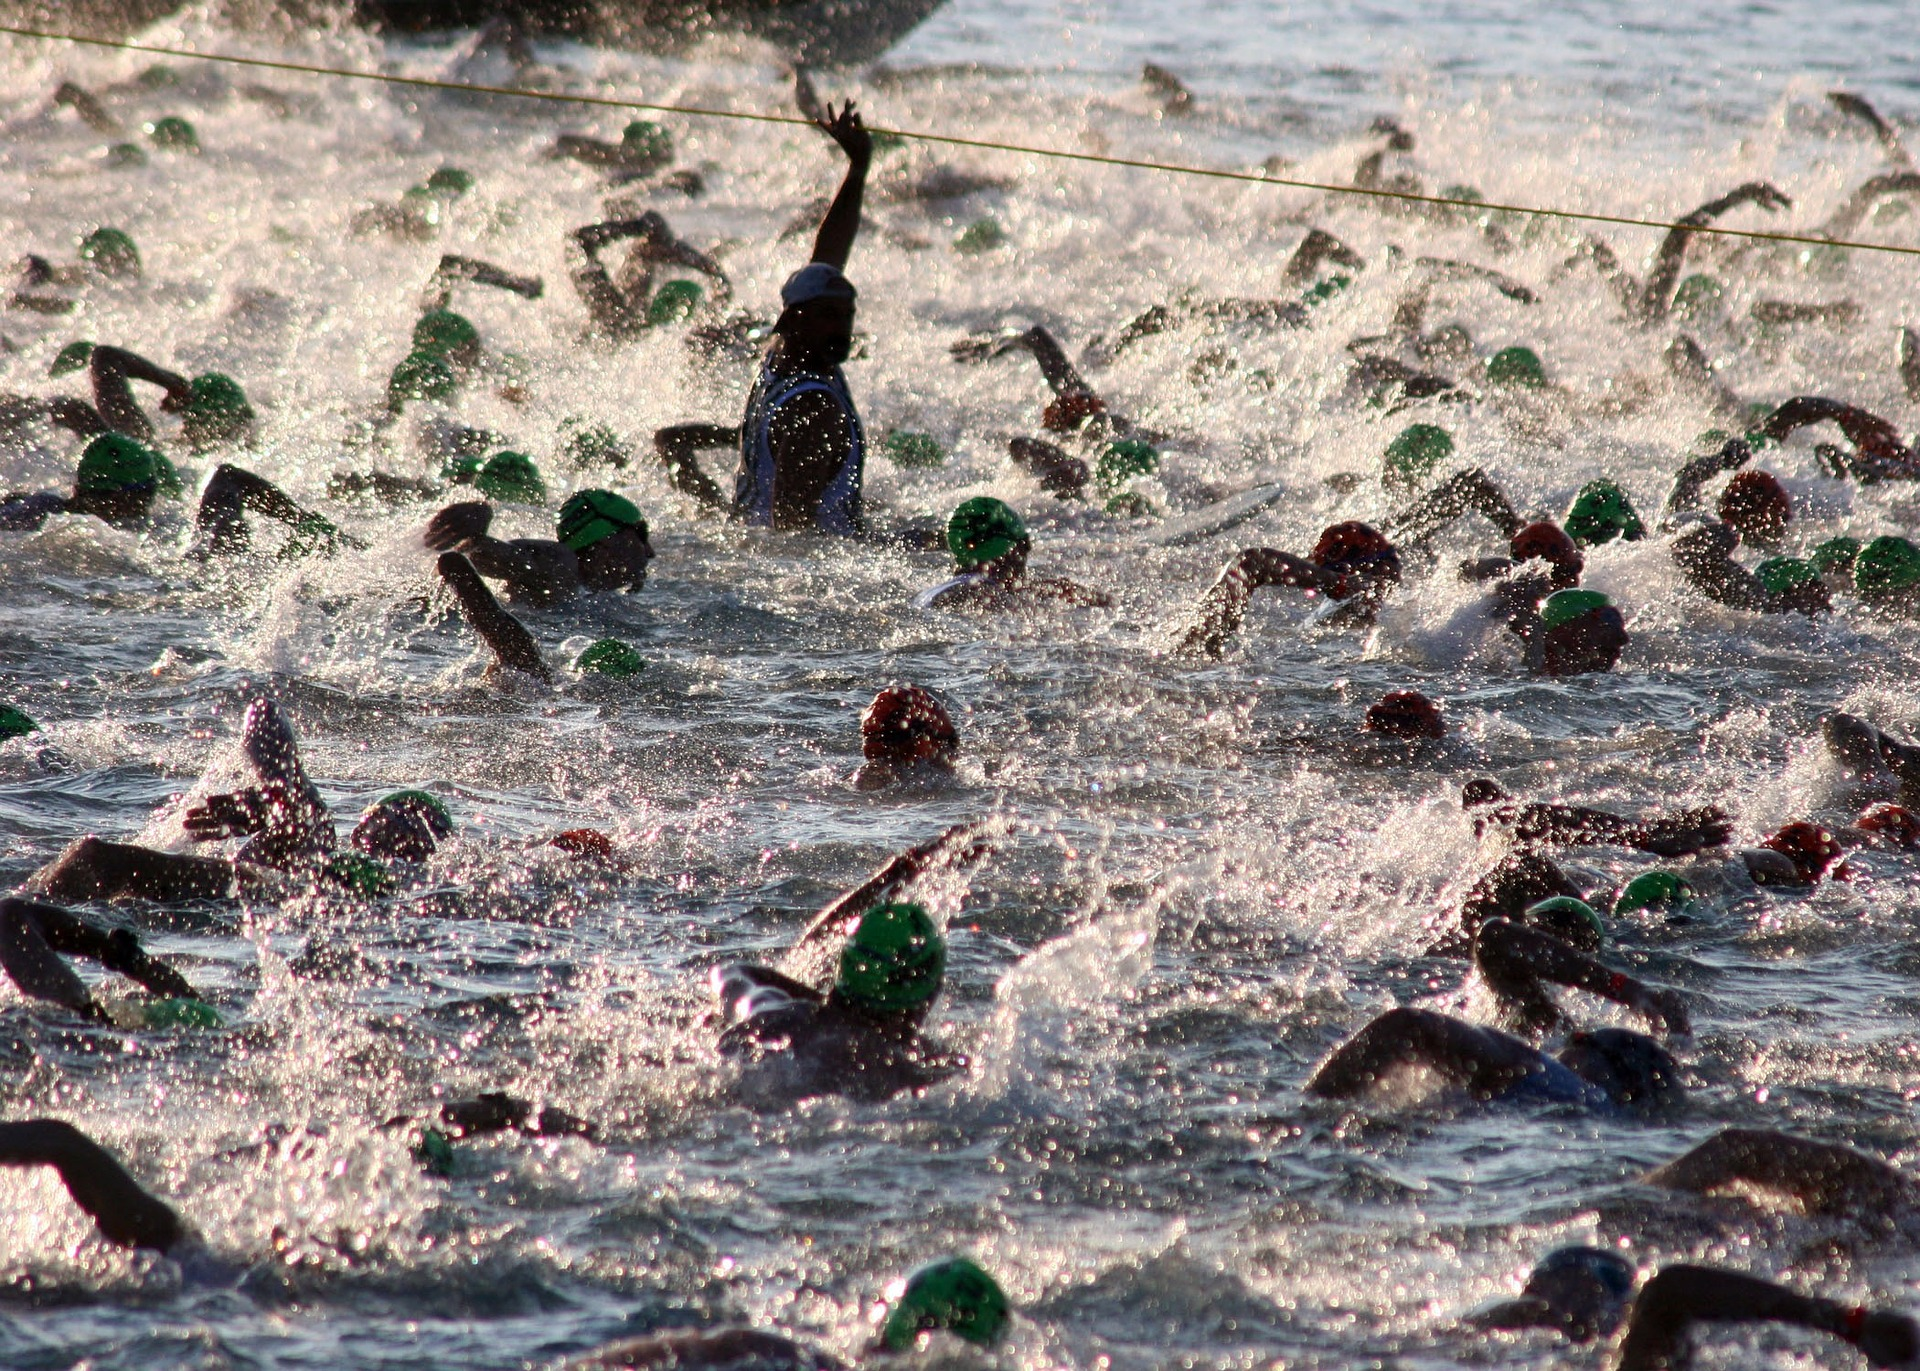 triathalon-swim-618742_1920.jpg